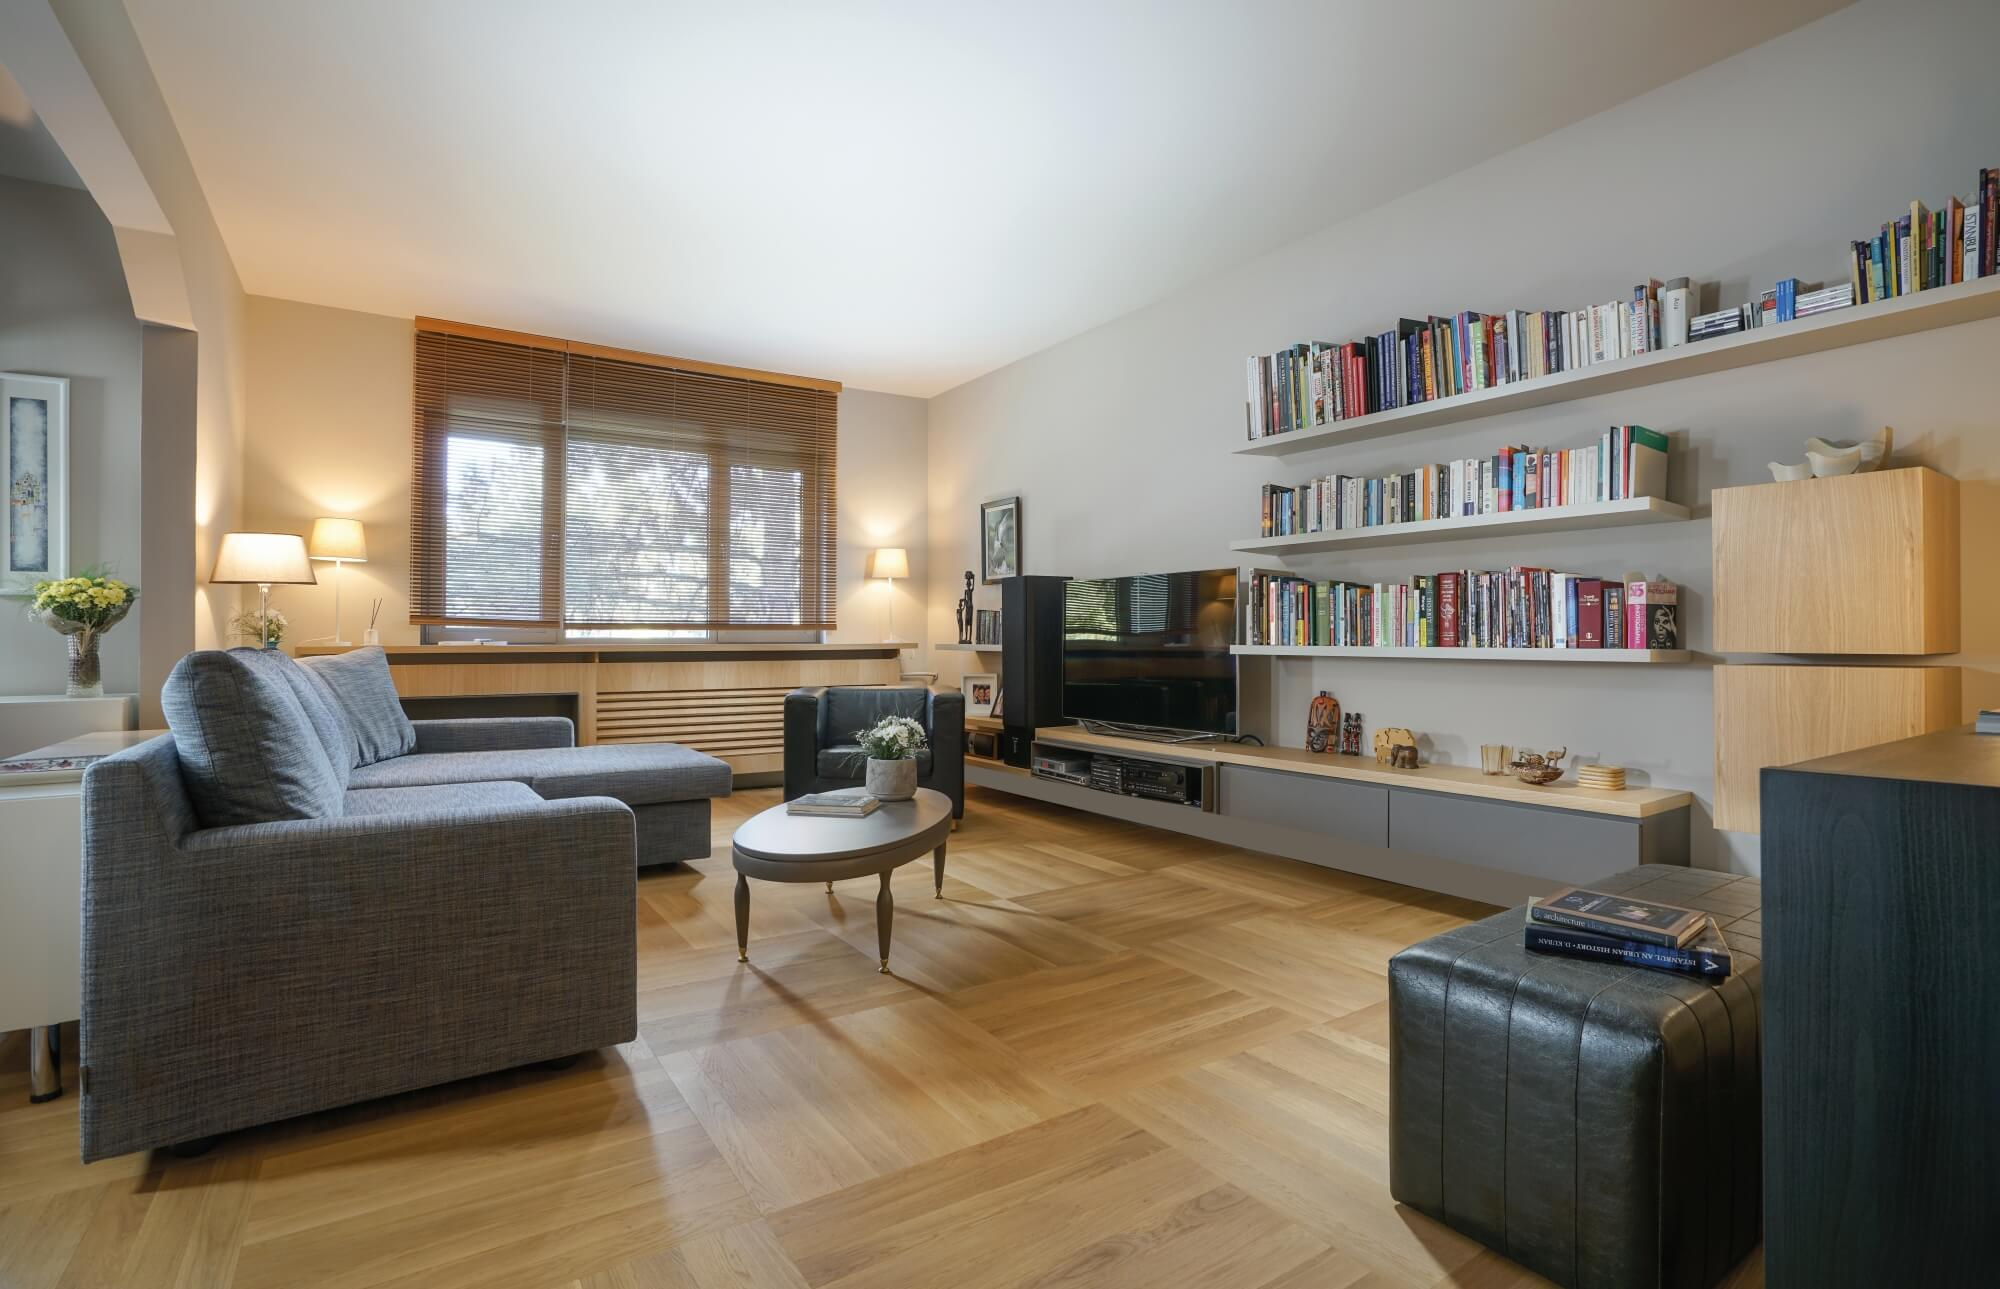 Parquet wood flooring in a living room with floating shelves.